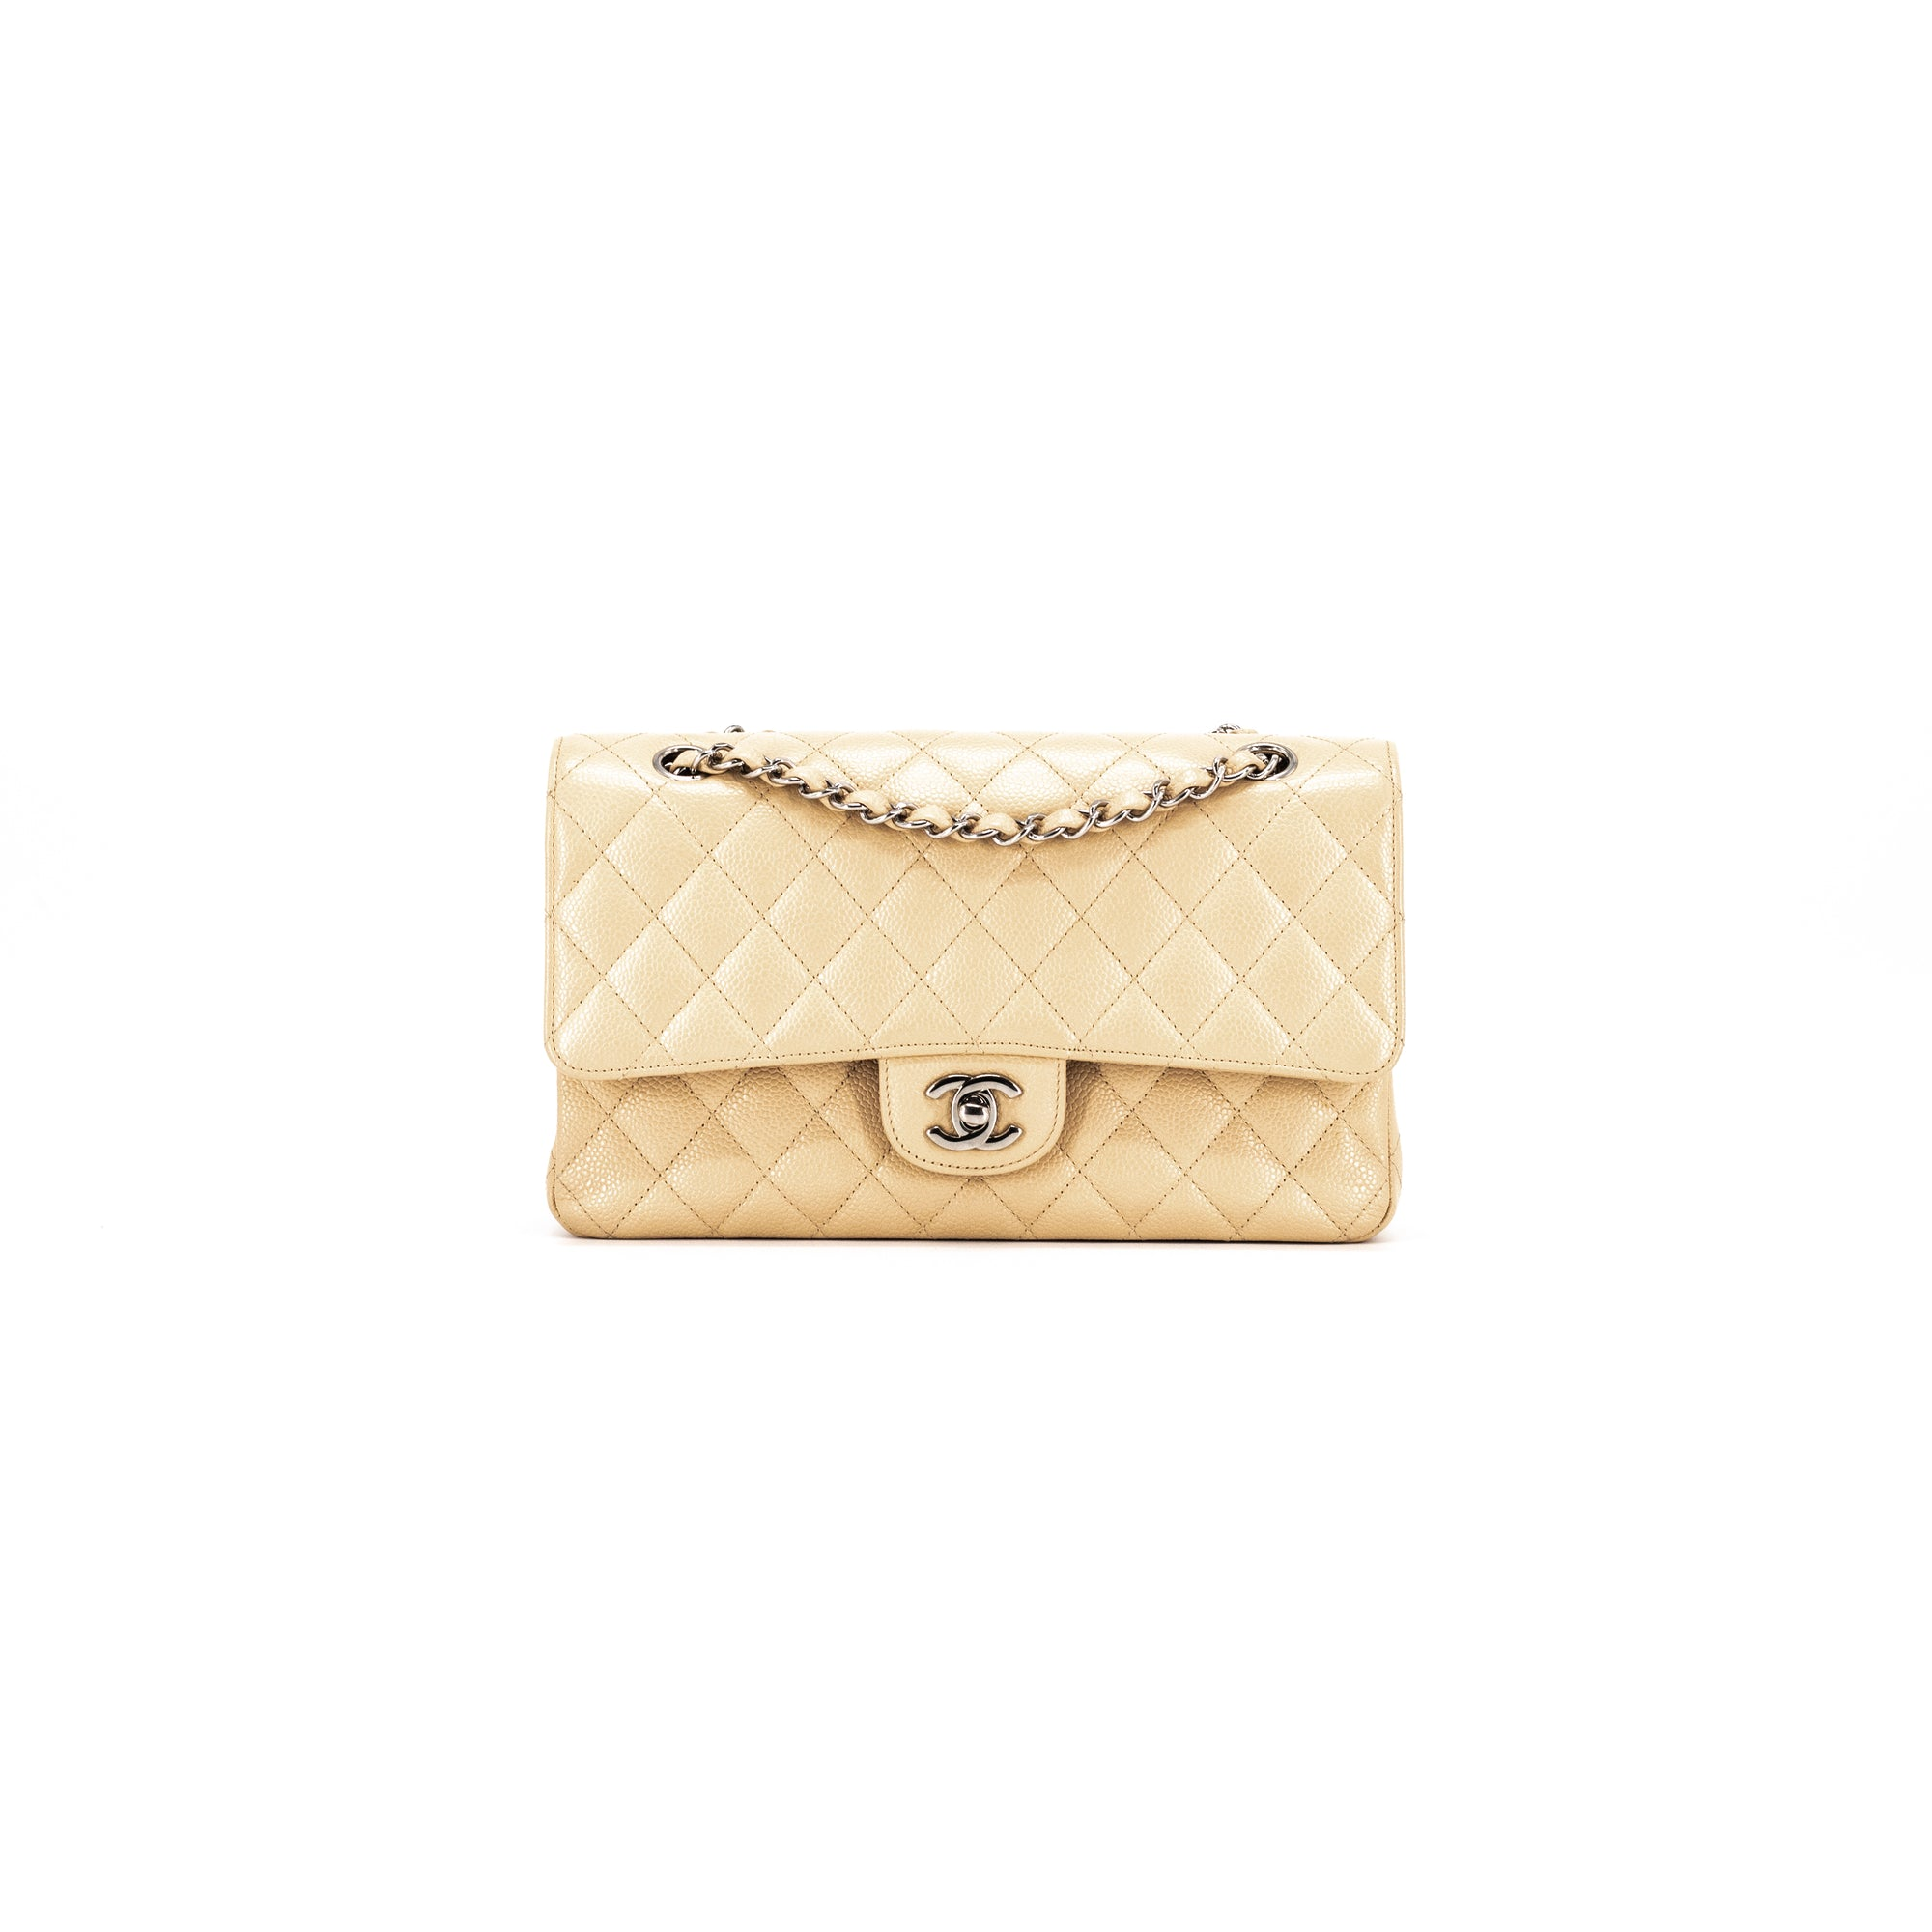 8f2ff6af4a1d CHANEL QUILTED CAVIAR MEDIUM/LARGE CLASSIC FLAP BEIGE - THE PURSE AFFAIR